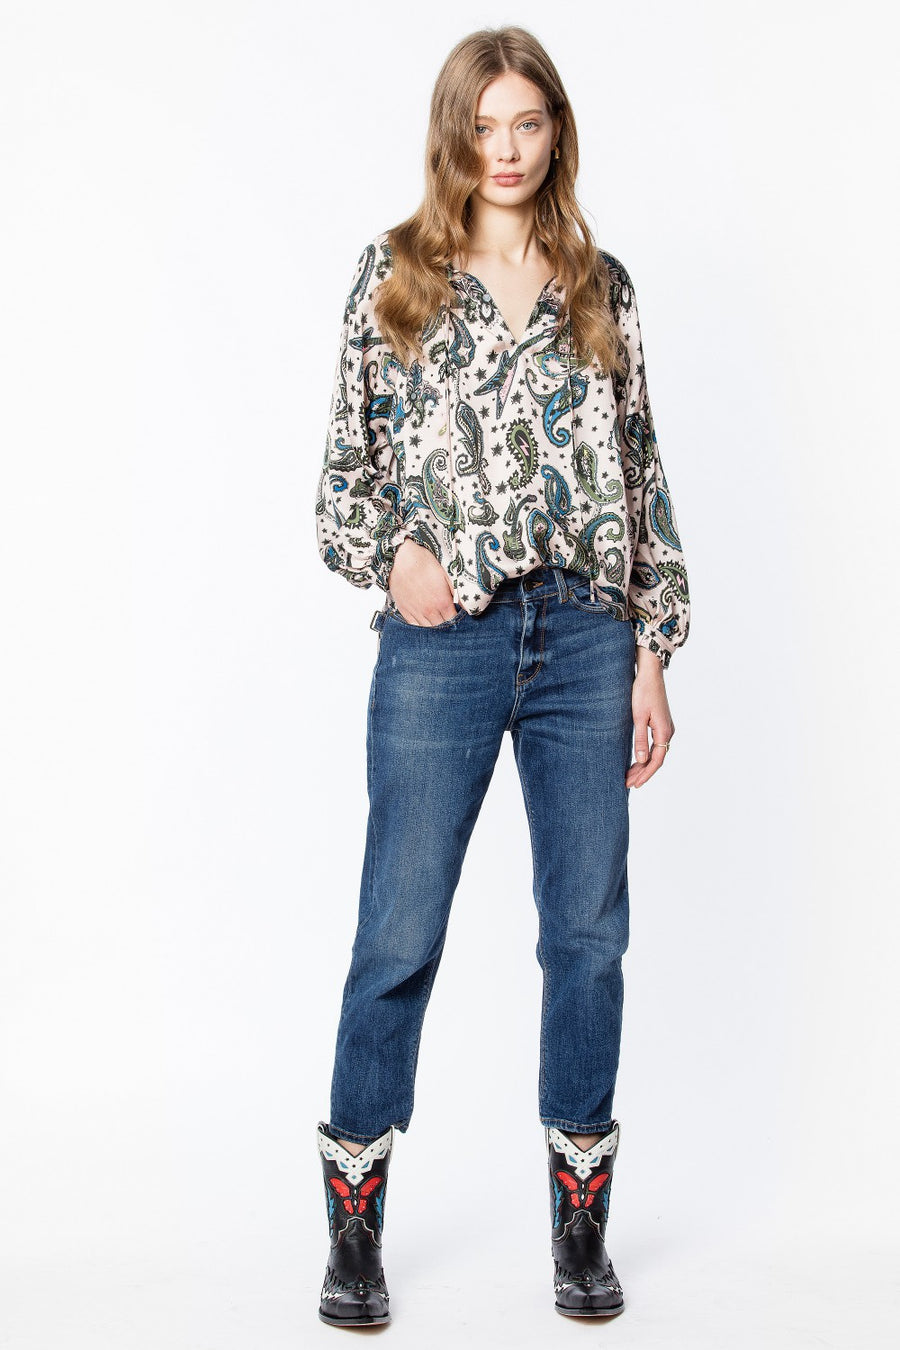 Zadig & Voltaire Theresa Paisley Top